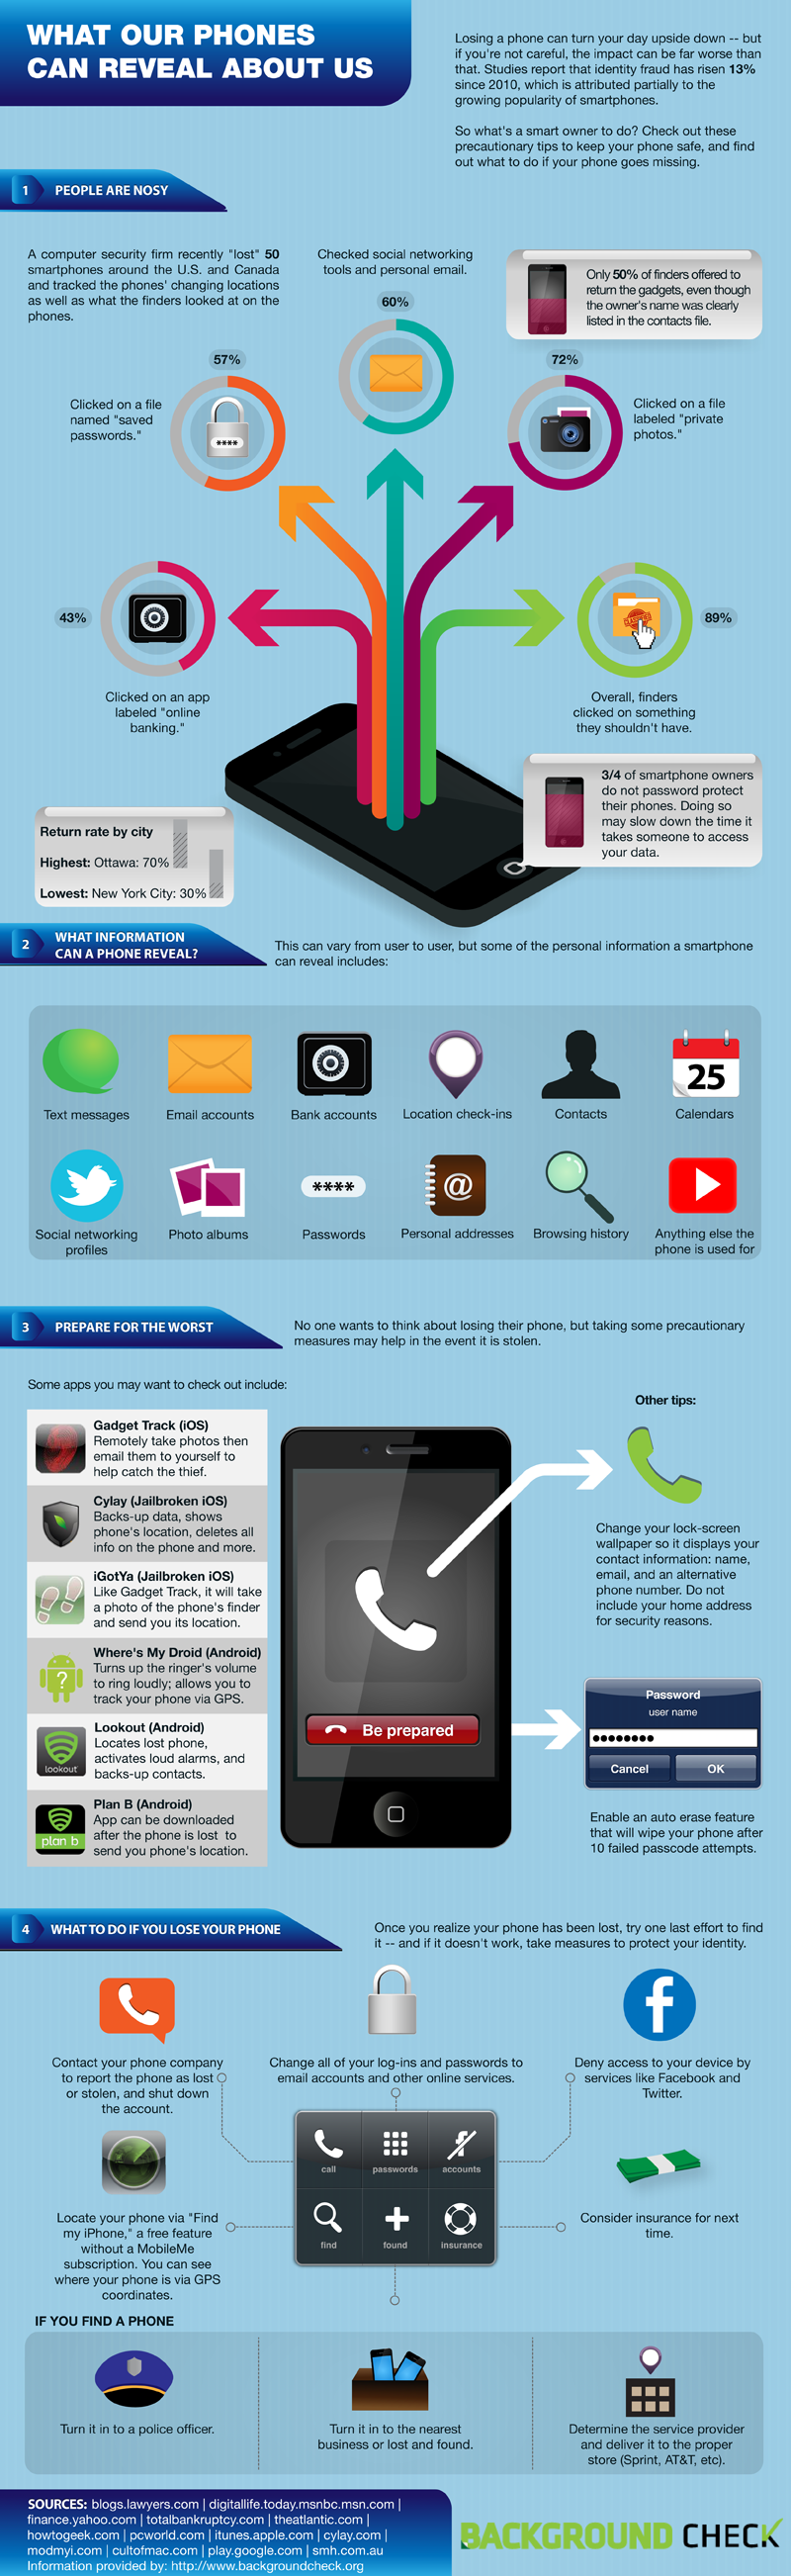 Tips to Get Your Phone Safe - Infographic